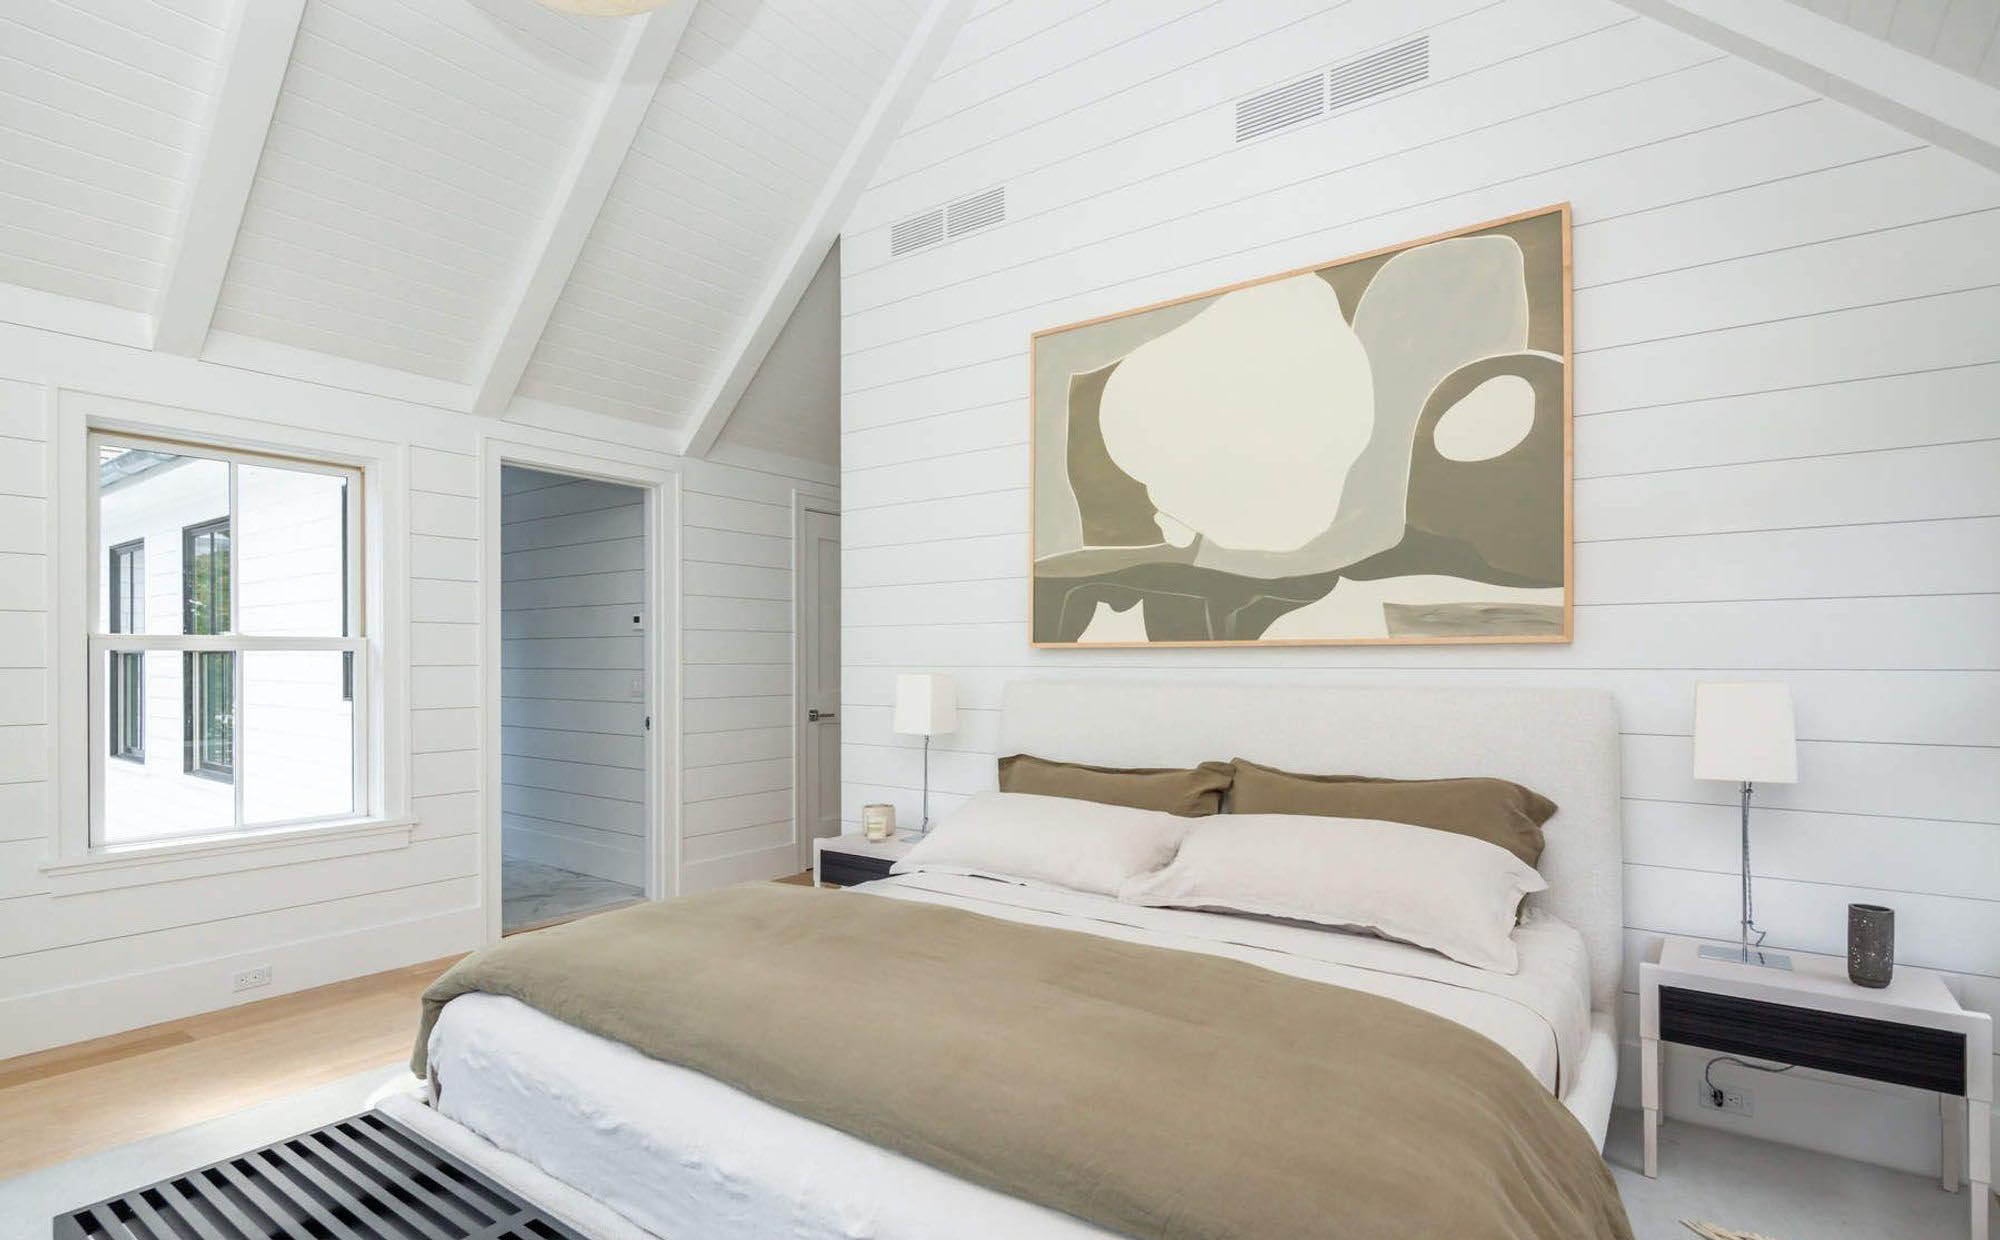 Bedroom shiplap painted white with vaulted ceilings and exposed beams.